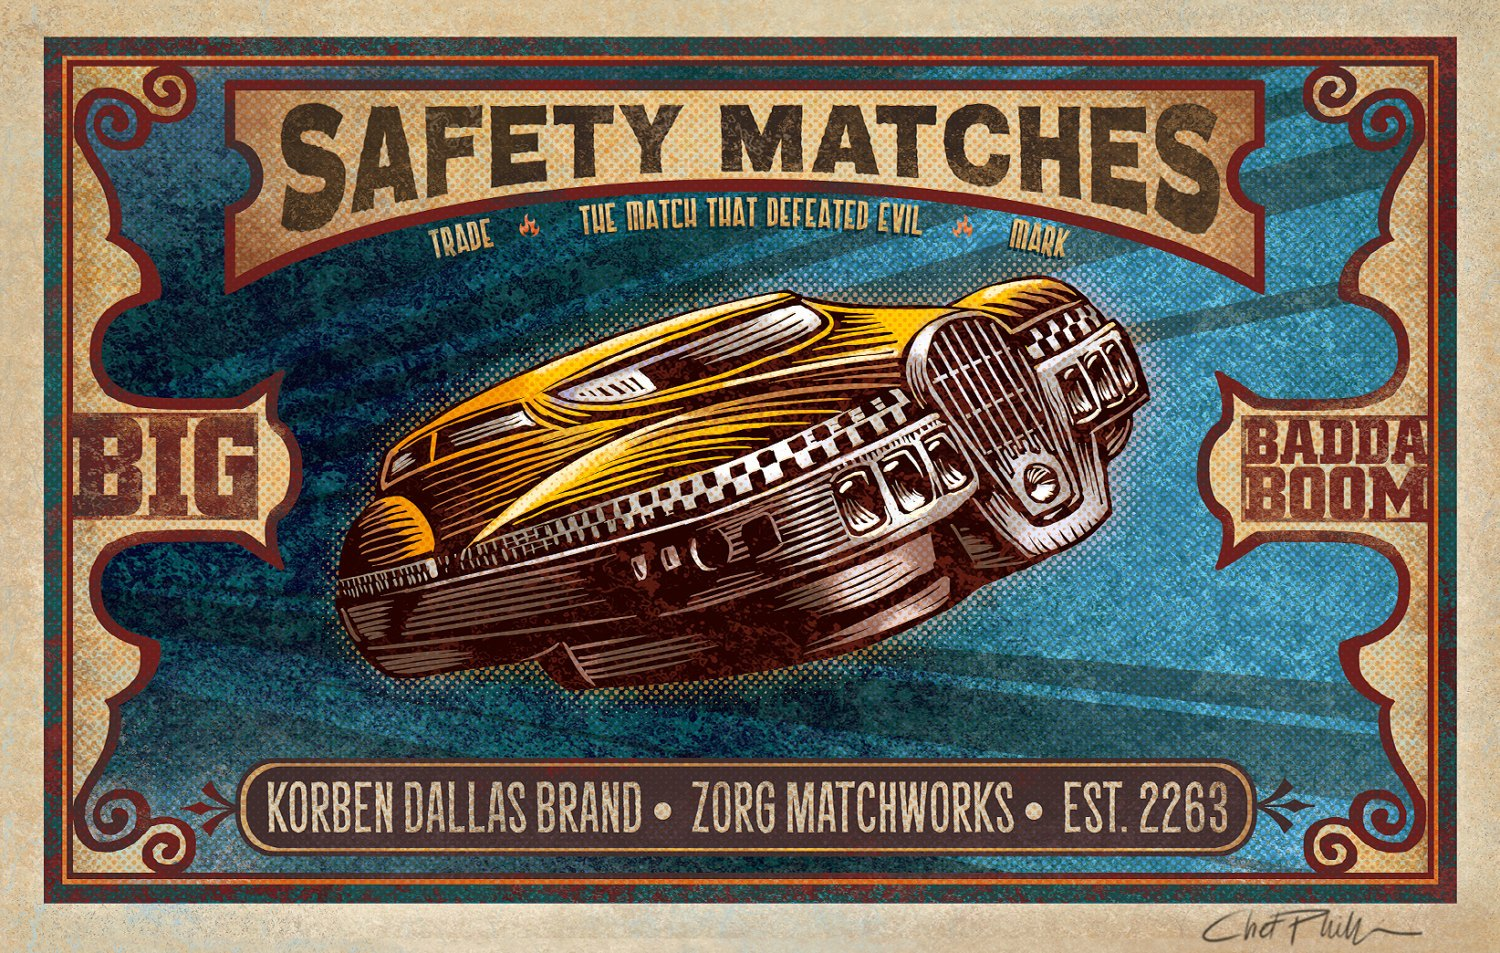 New Pop Matchbox Art by Chet Phillips (9 pics)